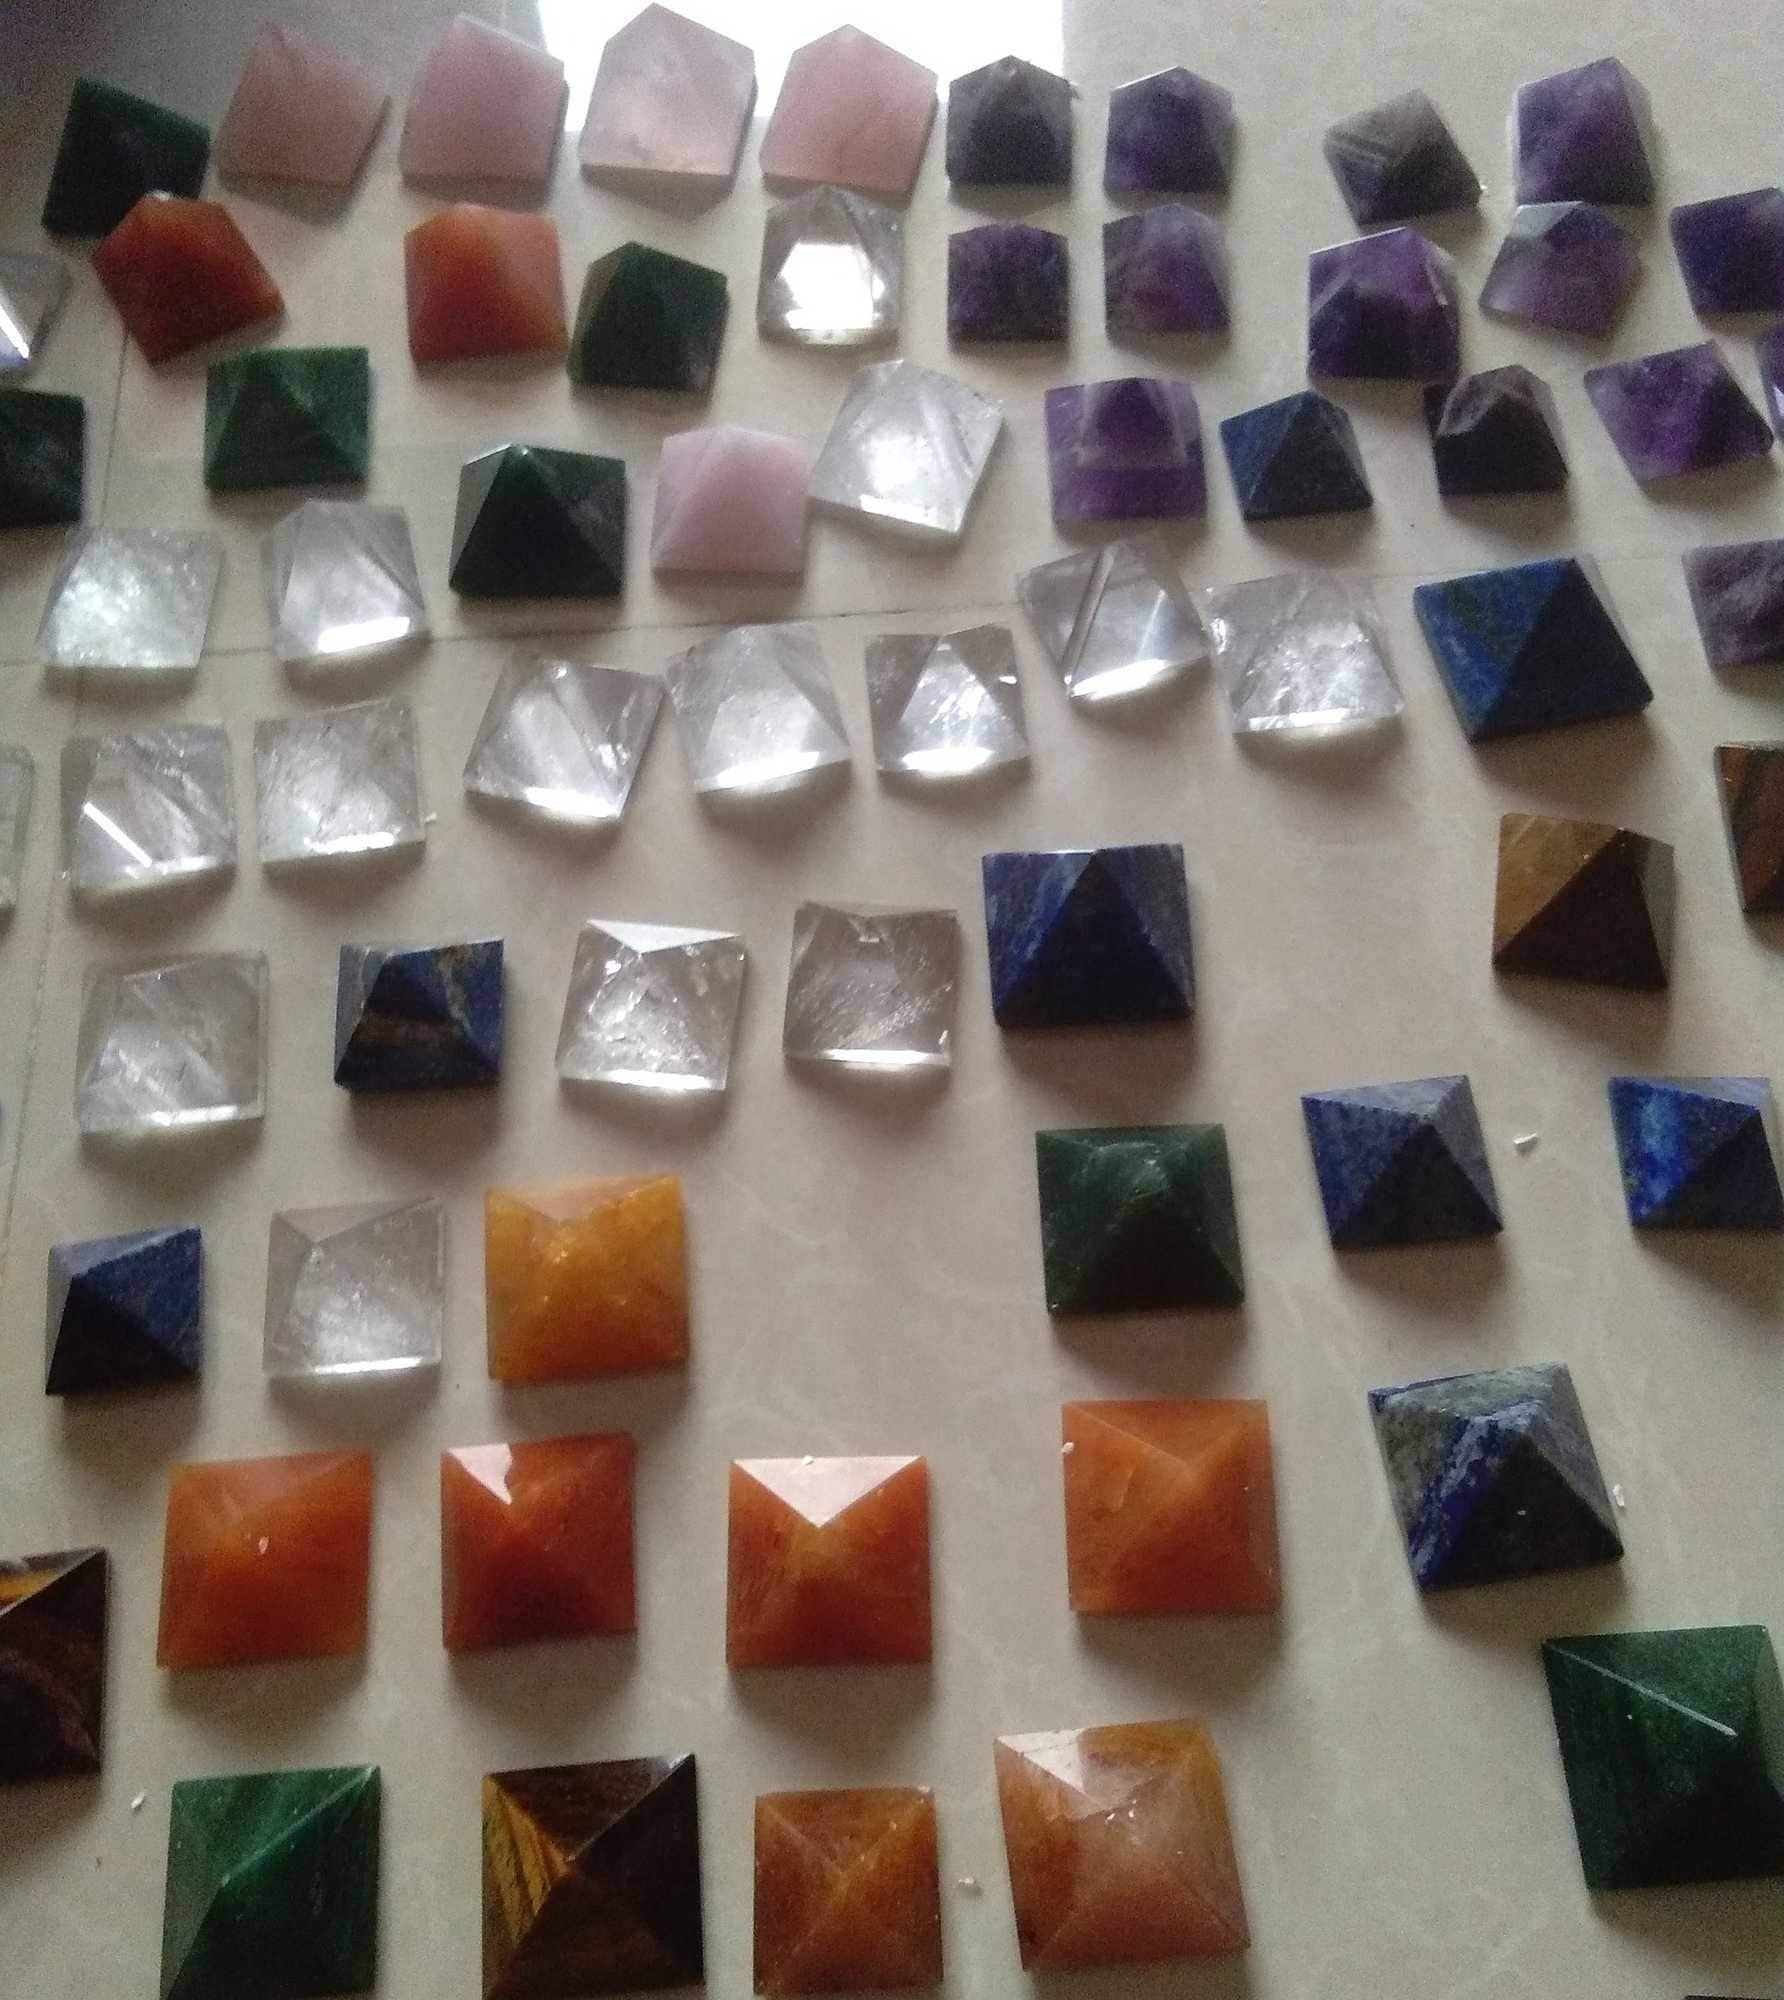 Top Rough Gemstone Dealers in Kandivali Village-Kandivali